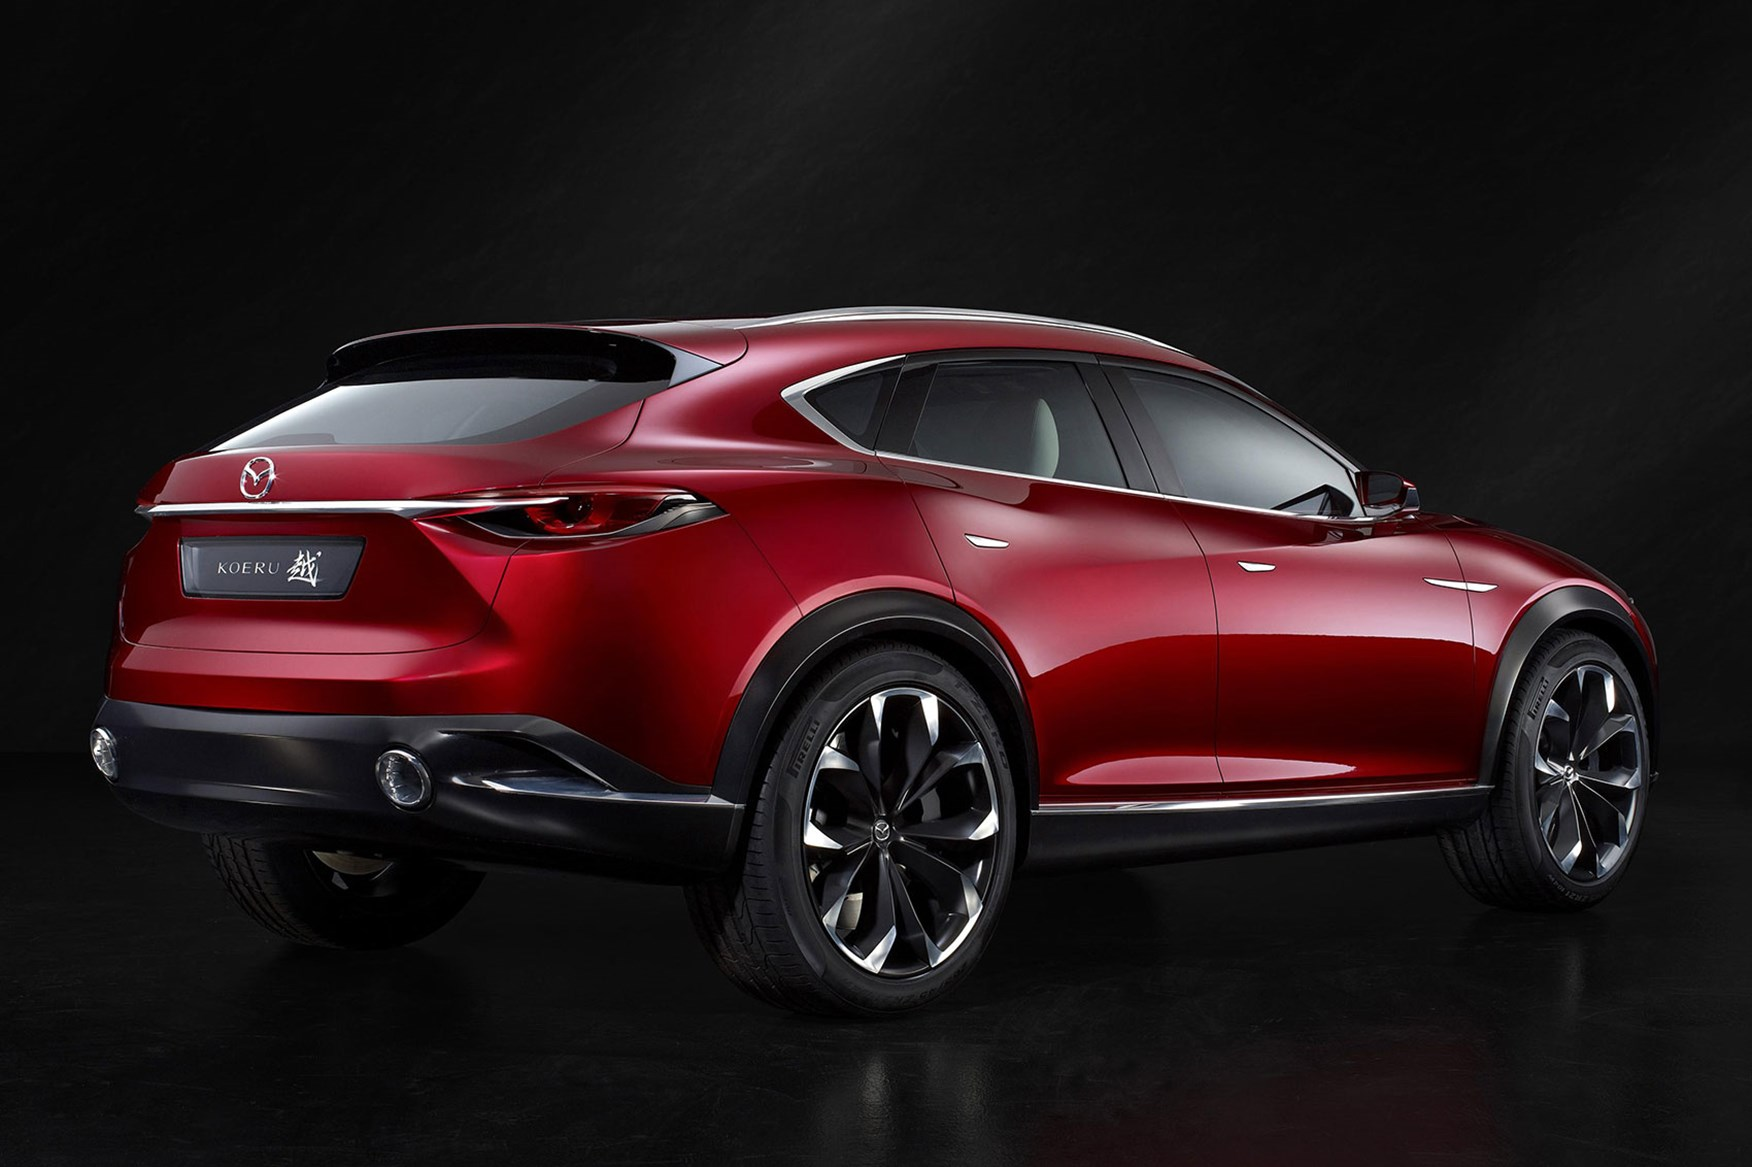 Mazda Koeru crossover at Frankfurt 2015: just a concept? by CAR Magazine